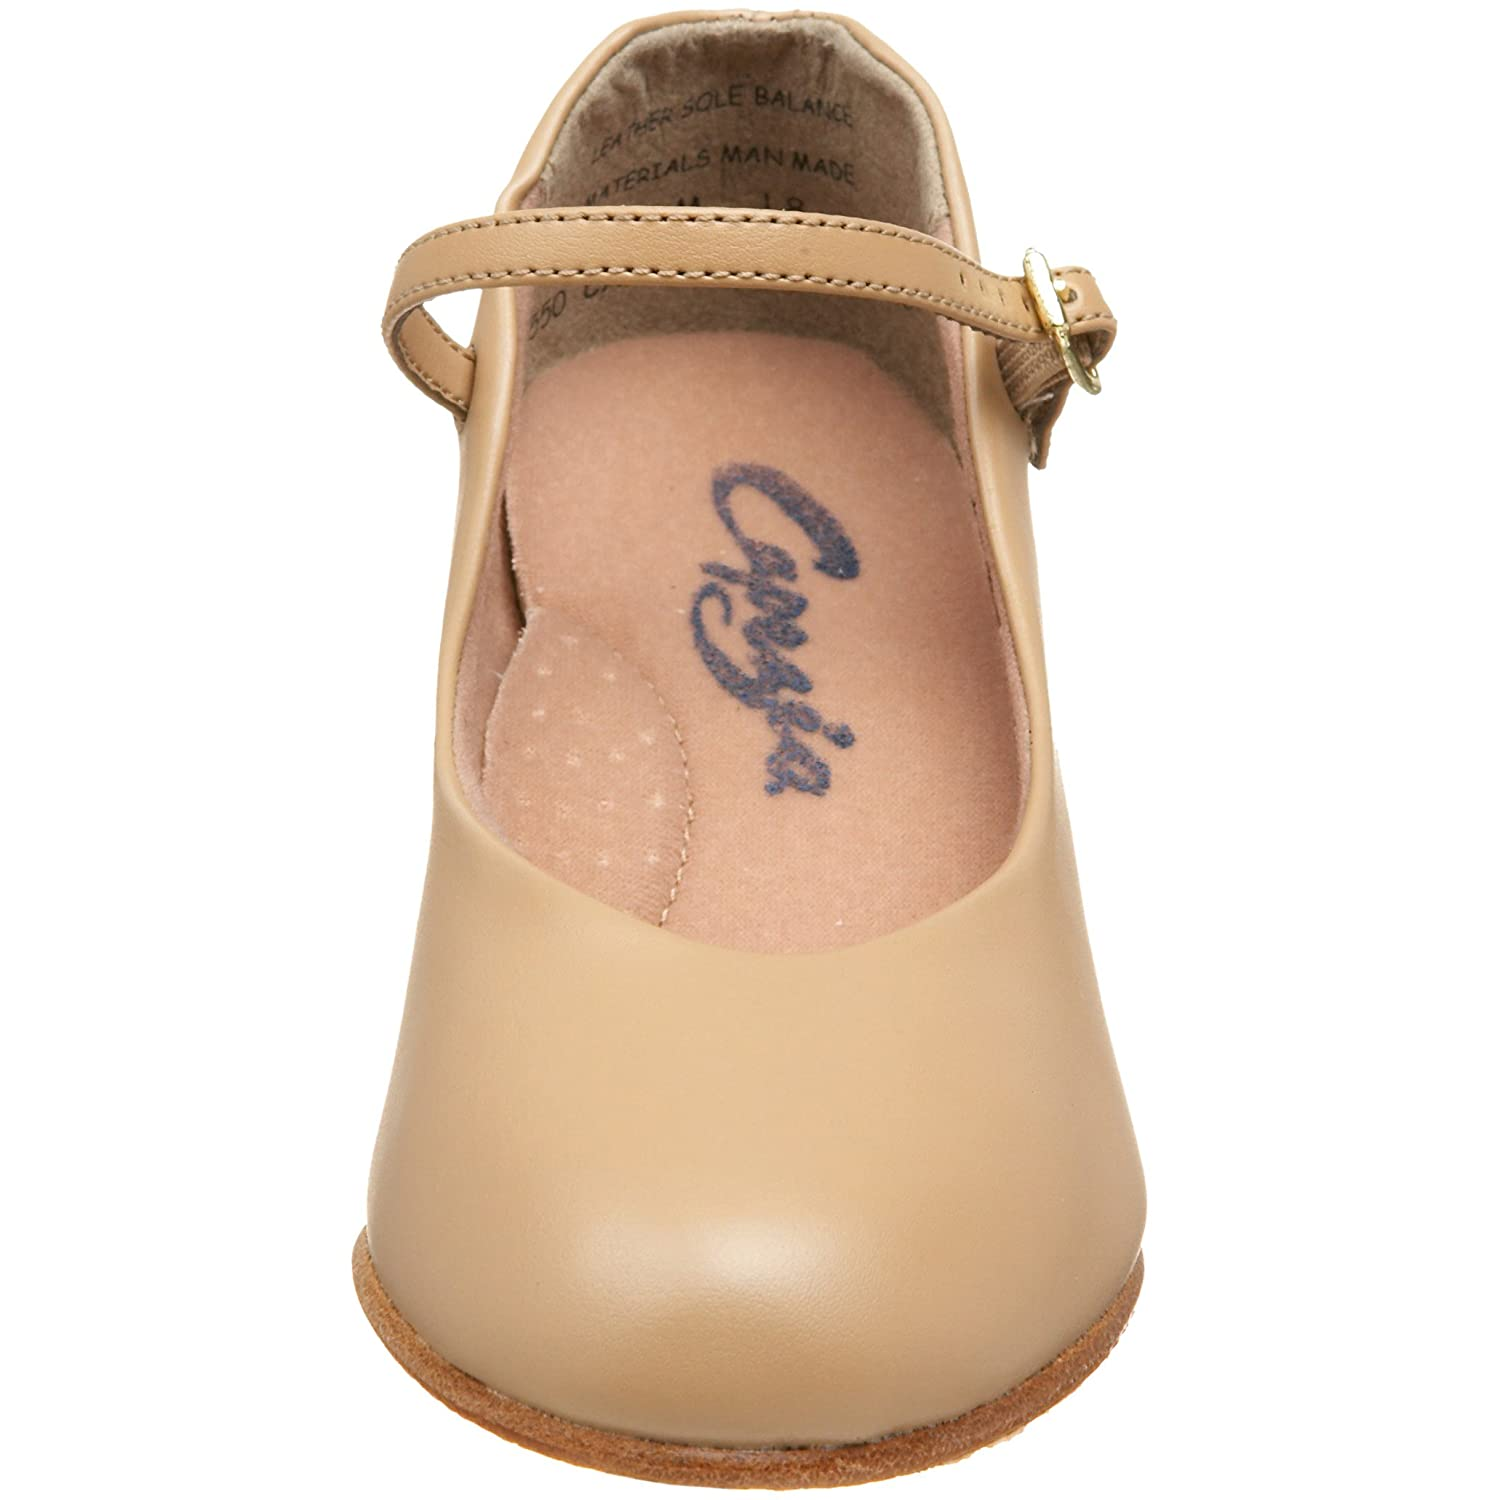 Capezio 550 6.5 Tan Junior Footlight B002CO3FAO 6.5 550 B(M) US|Caramel 1e30a6